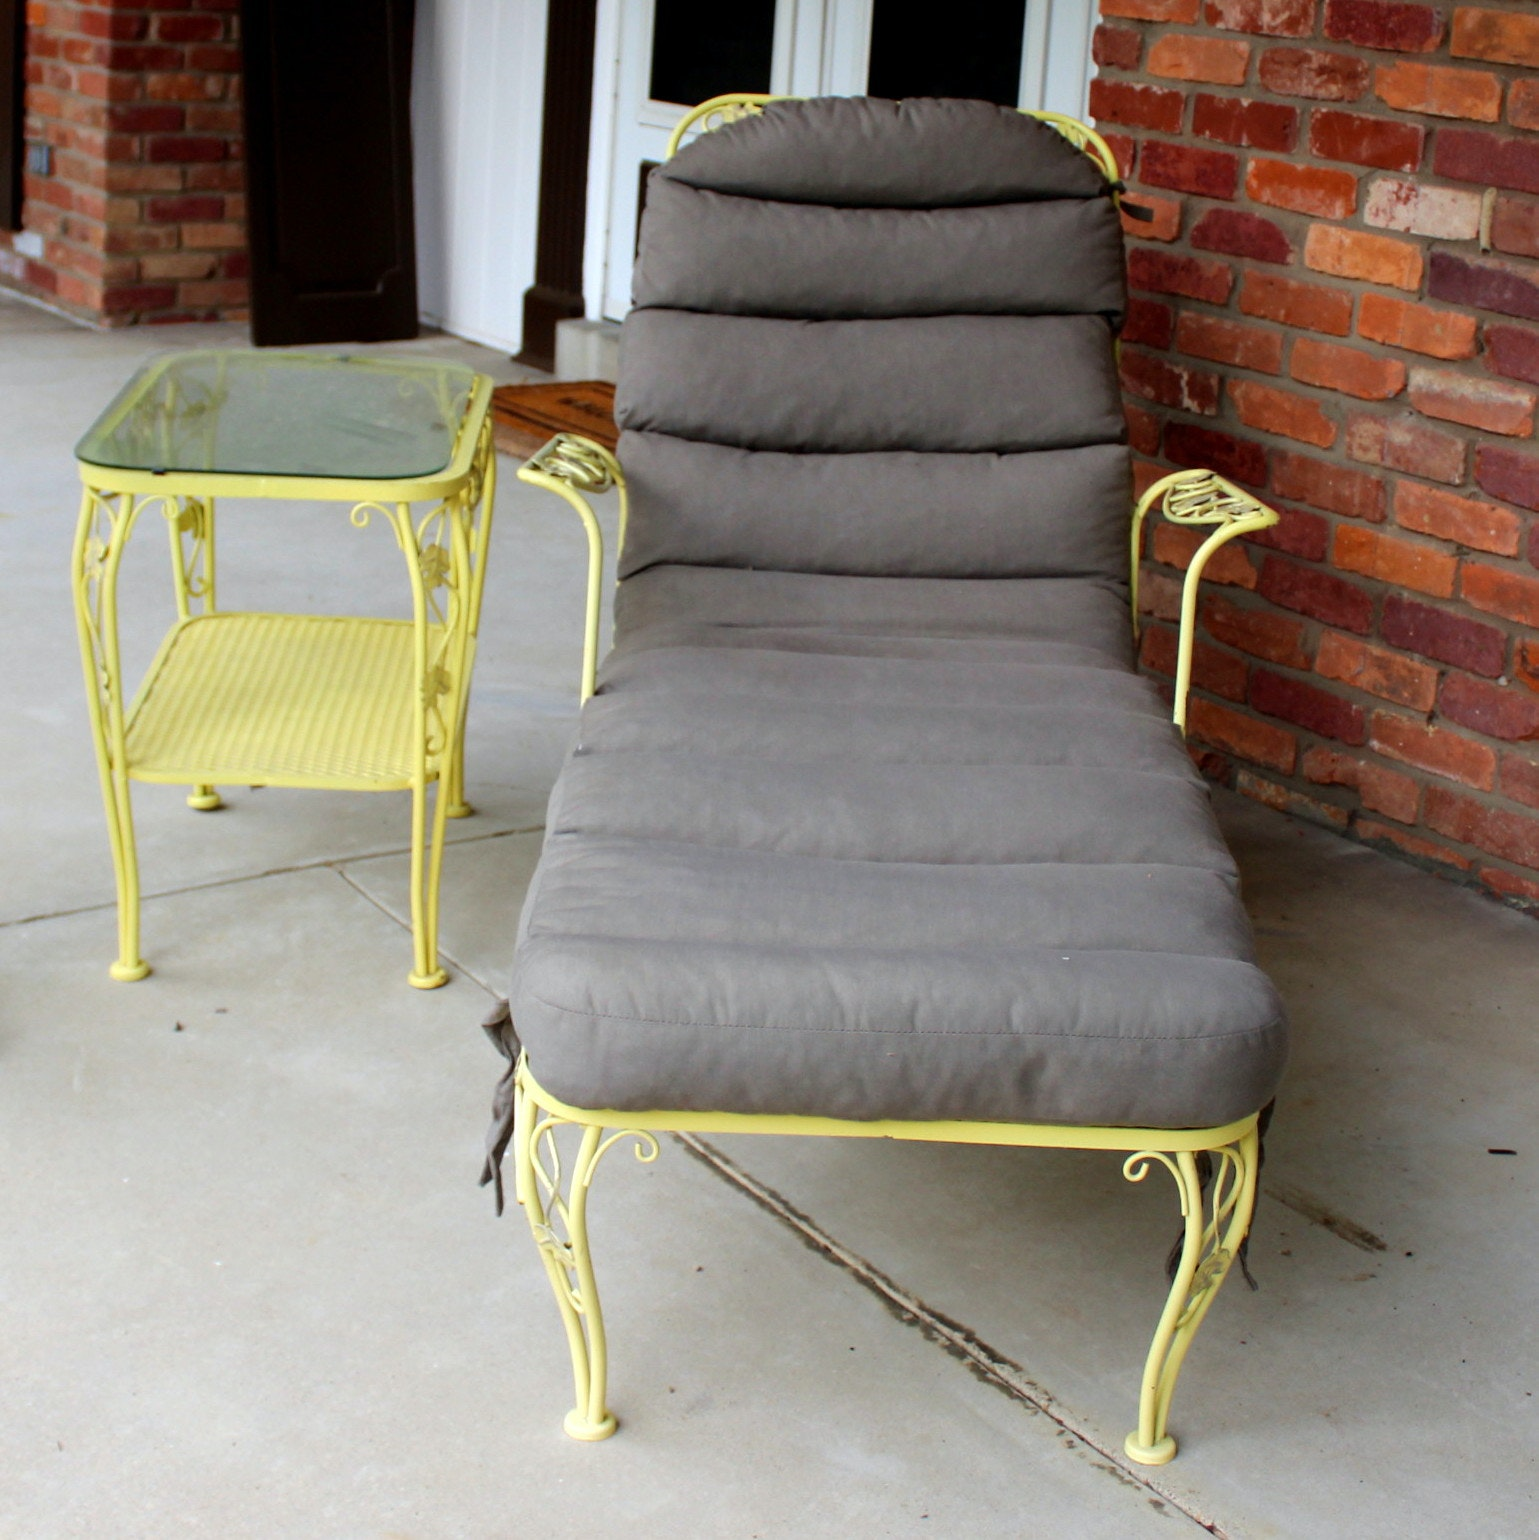 Vintage Meadowcraft Wrought Iron Lounge Chair And Table ...